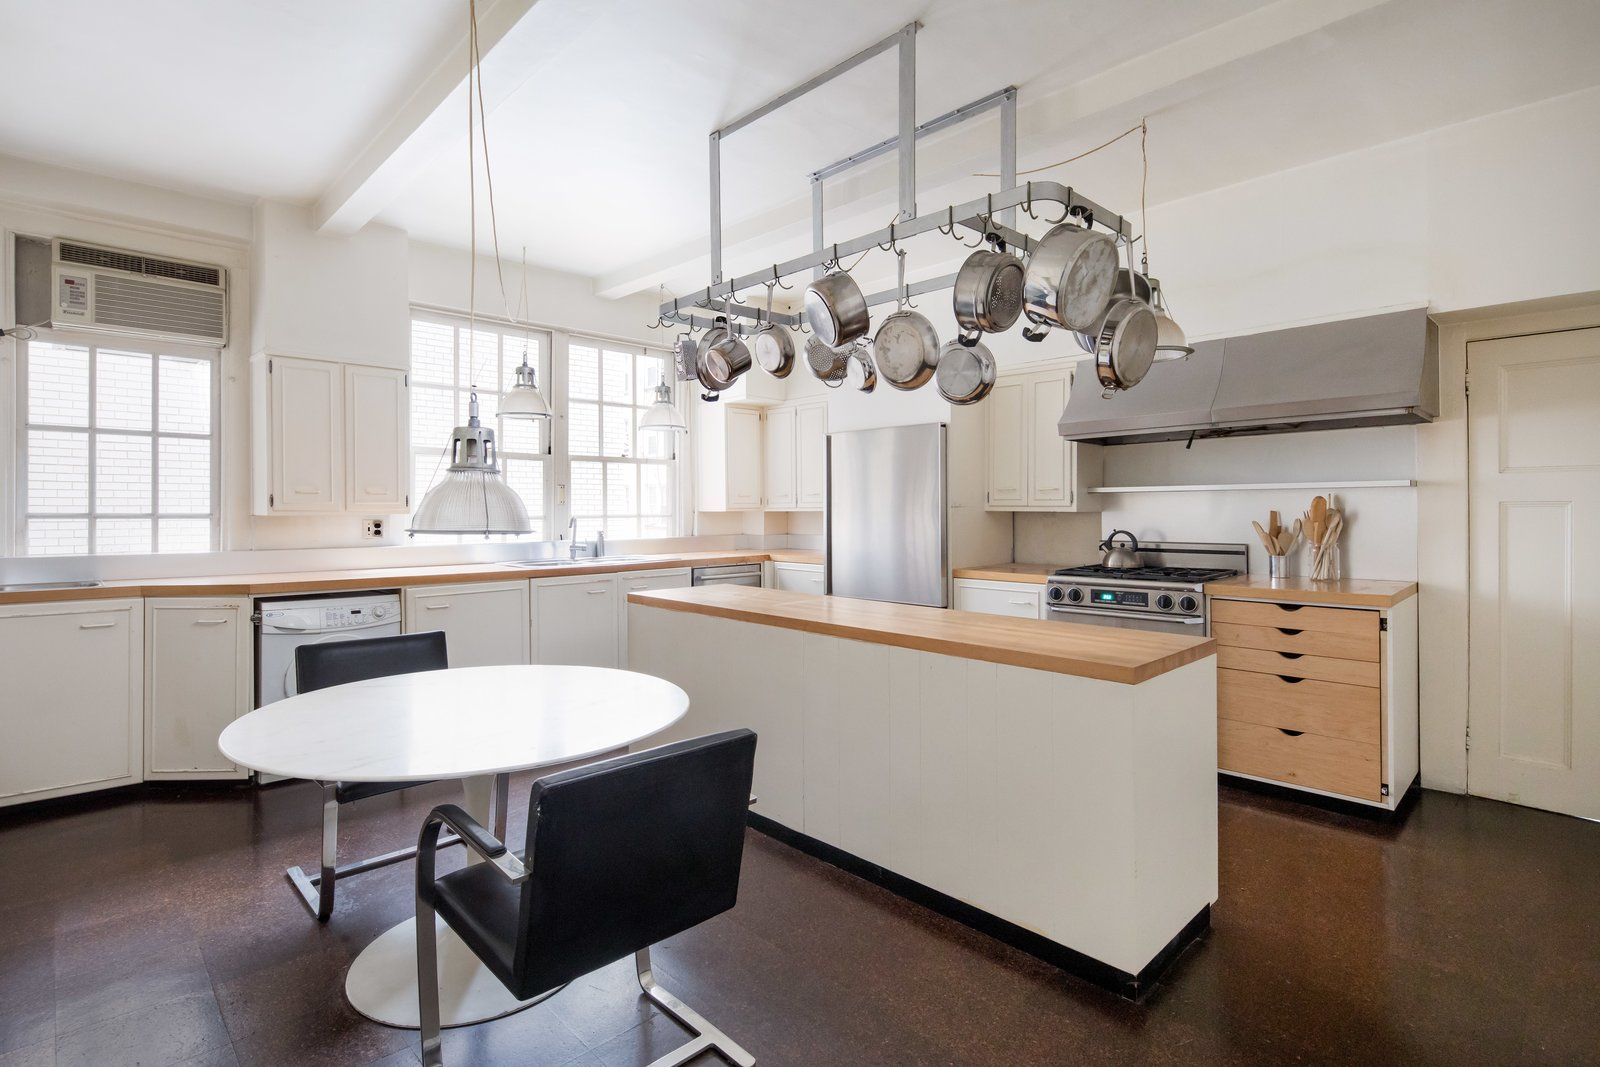 Kitchen, Wood, Refrigerator, Pendant, Dishwasher, Range Hood, Wood, Drop In, White, and Range The eat-in kitchen with butcher block counters.  Best Kitchen Range White Dishwasher Pendant Wood Photos from Legendary Designers Massimo and Lella Vignelli's New York Duplex Is Listed at $6.5M